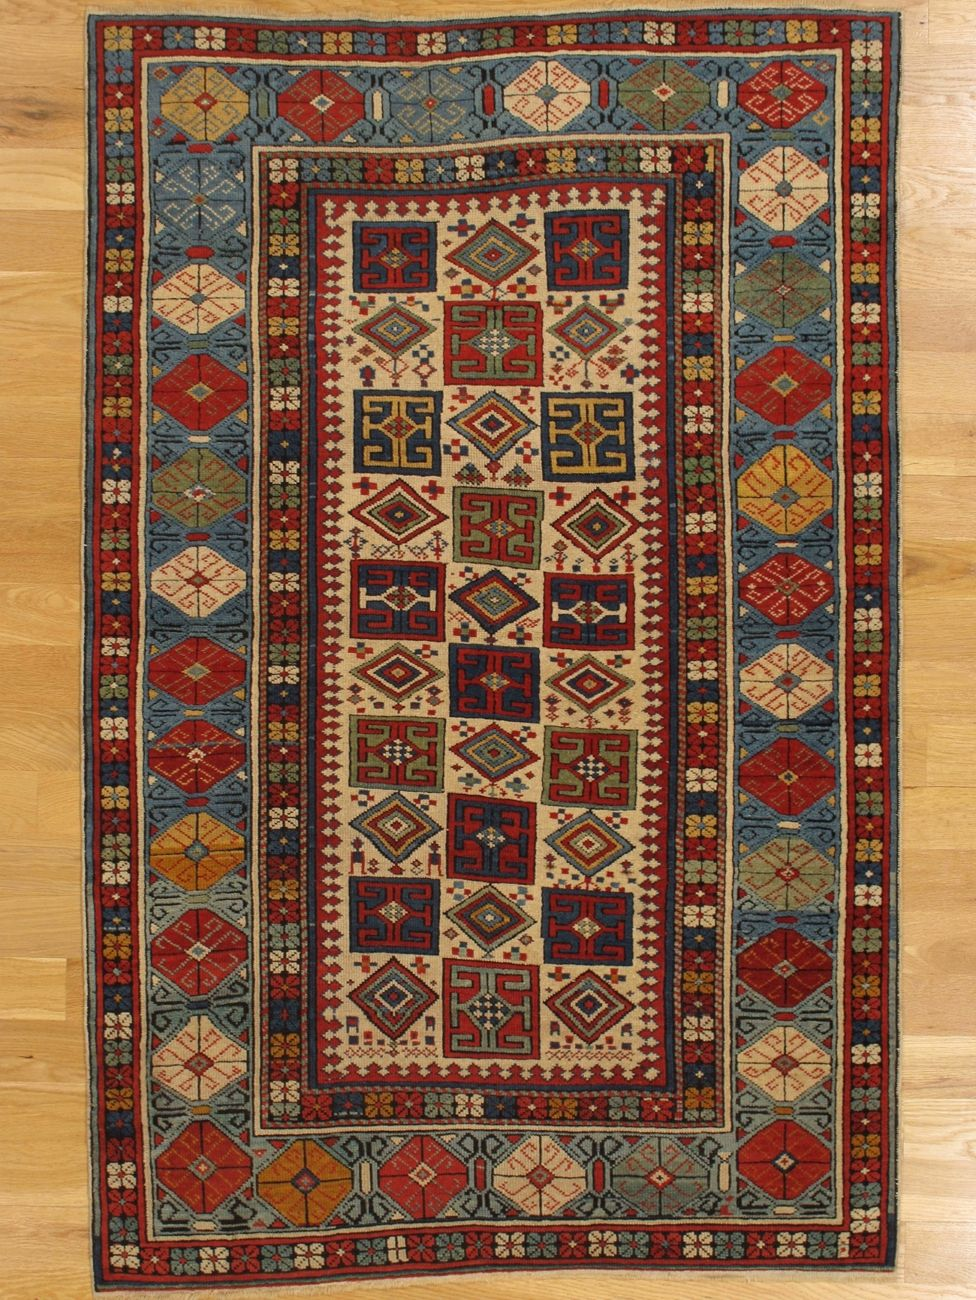 Kuba Rug From Eastern Caucasus West Coast Of The Caspian Sea Age Circa 1875 Size 5 6 X3 7 168x109 Cm Sold Rugs Rugs On Carpet Antique Carpets